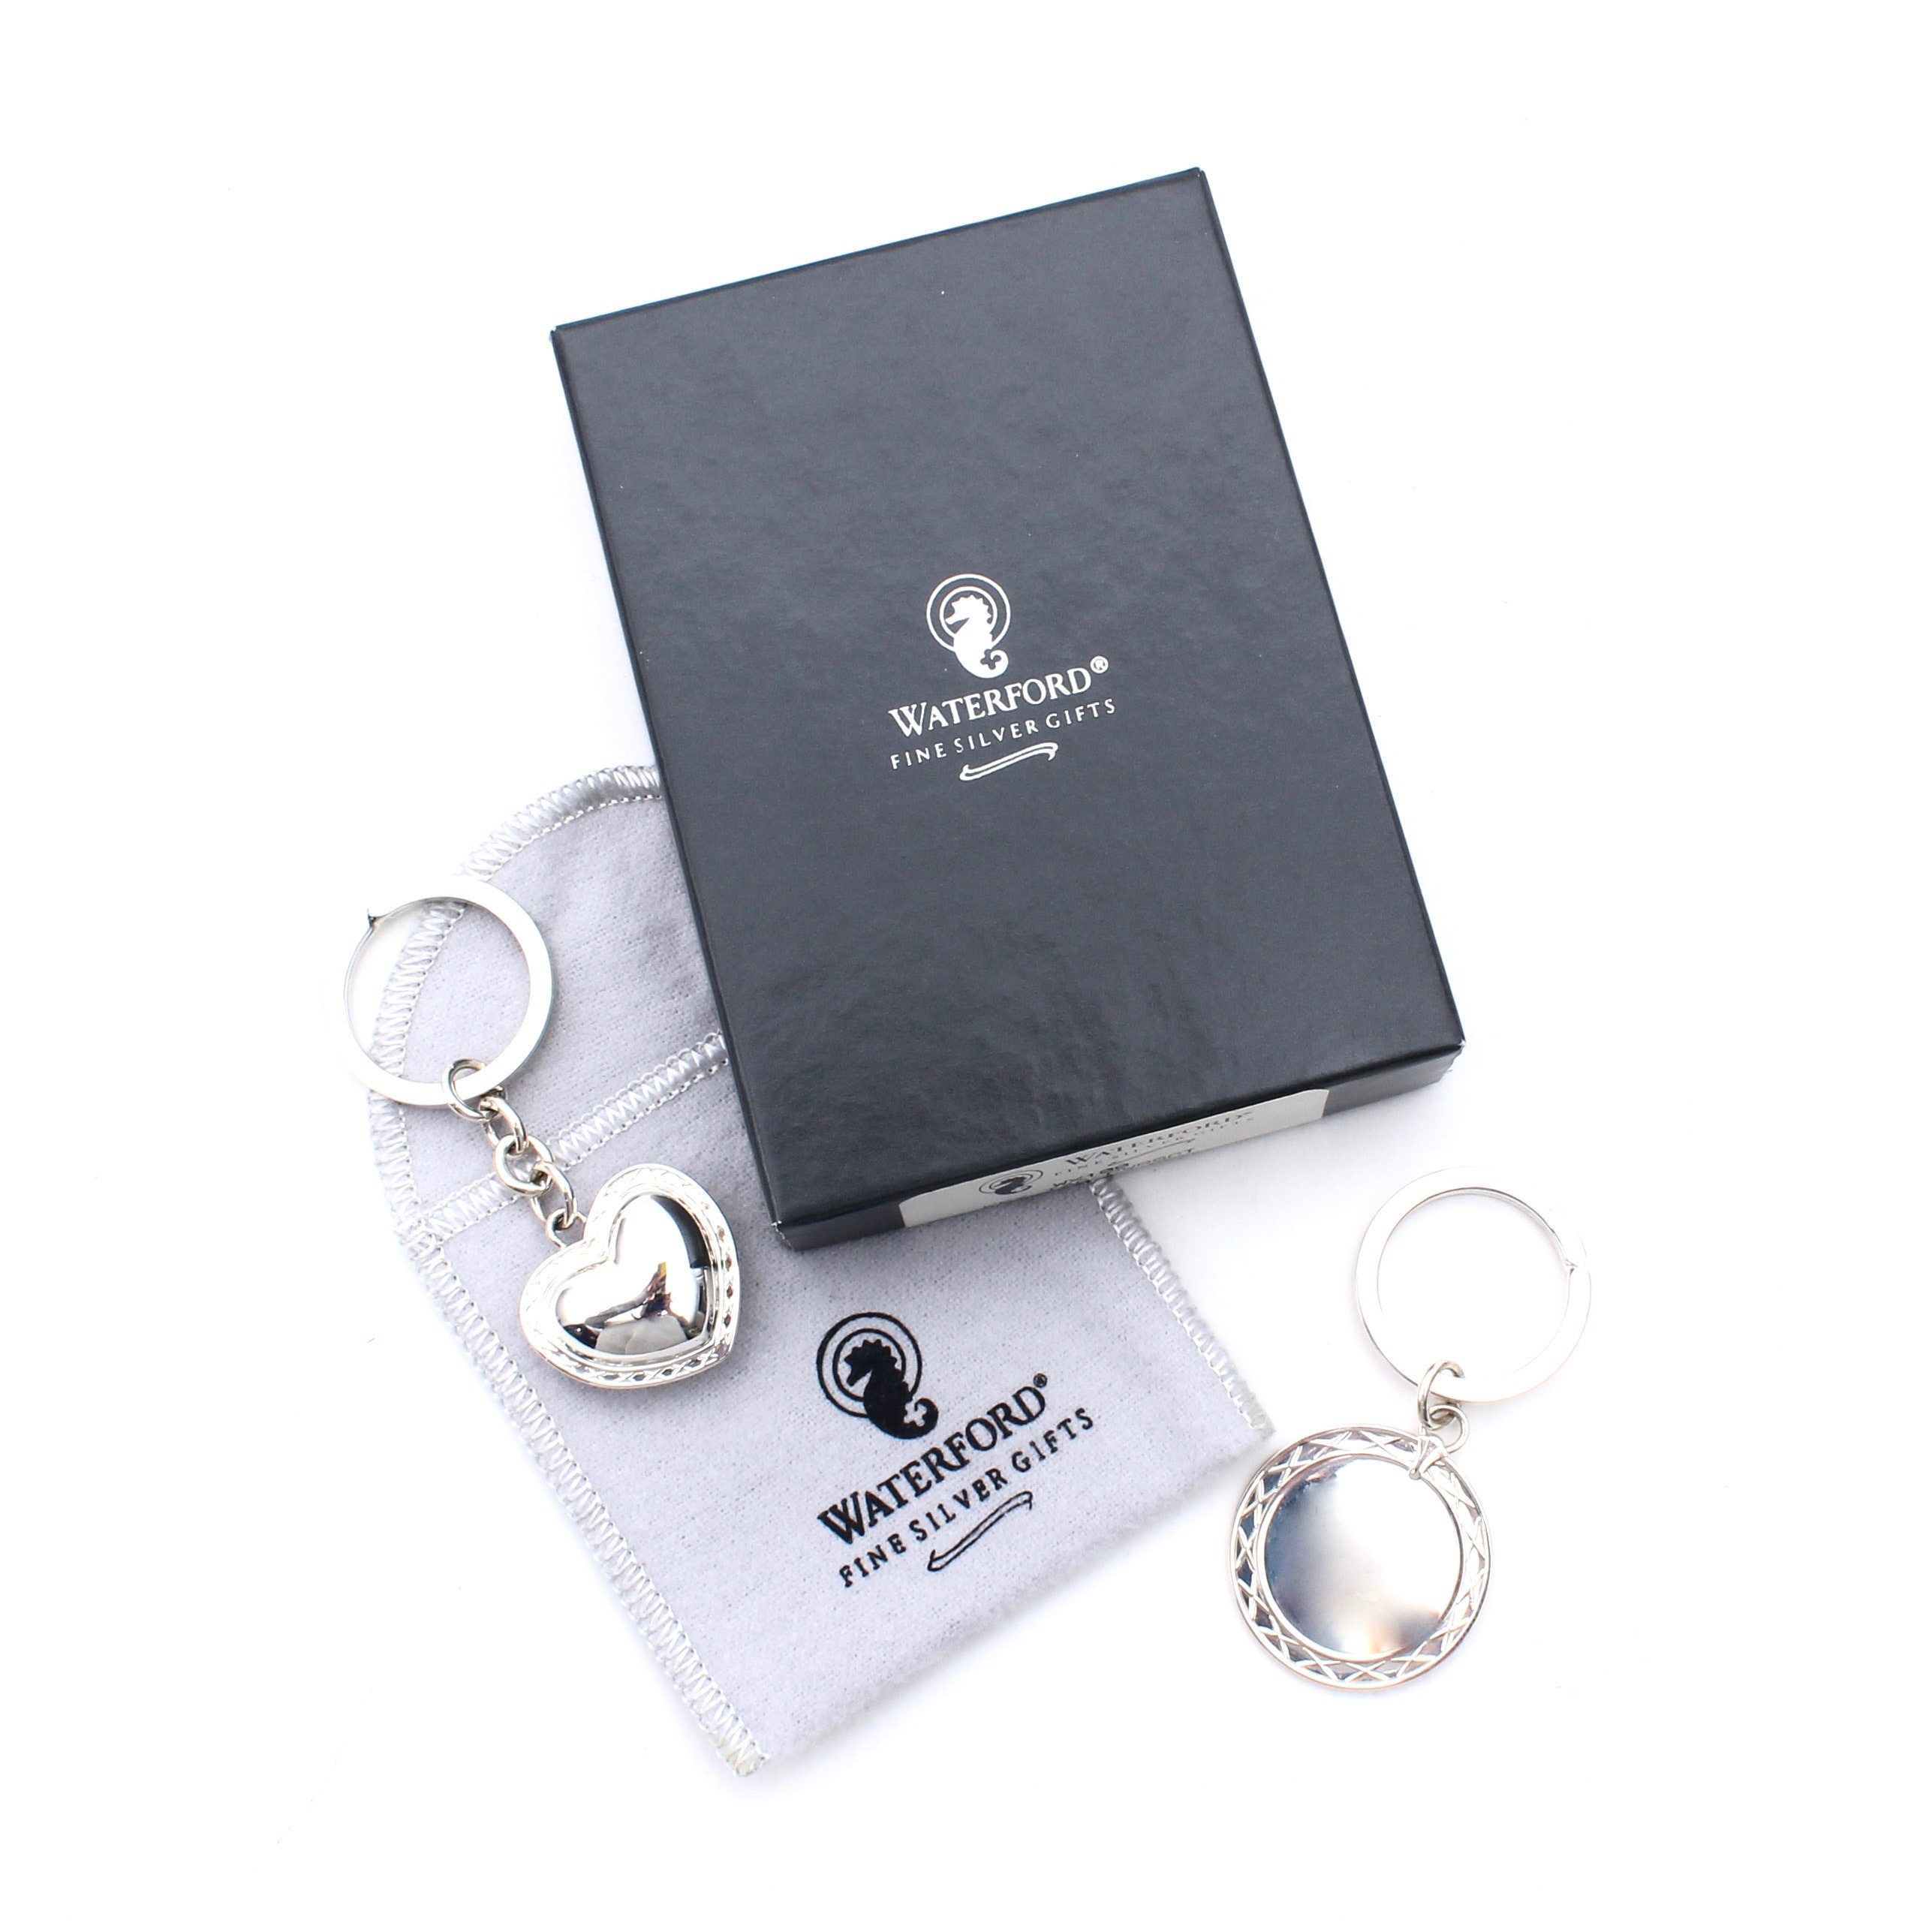 Waterford Sterling Silver Key Rings